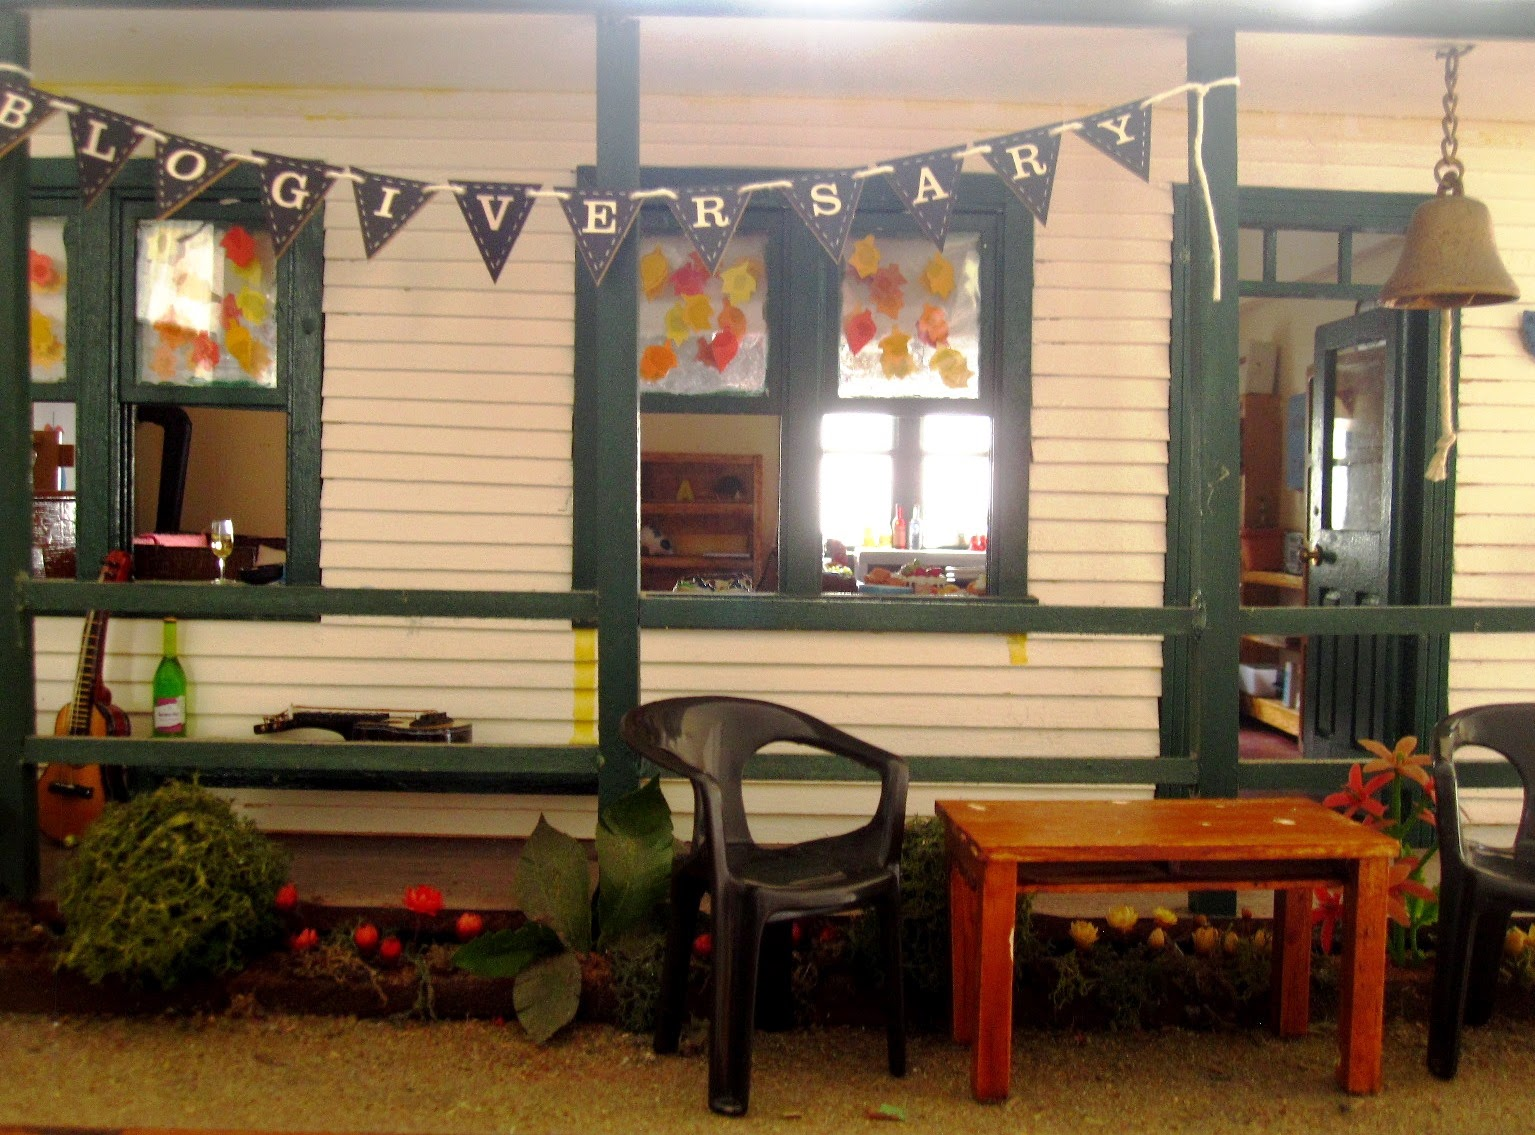 Miniature dolls' house school with bunting reading 'blogiversary' tied to the front verandah.